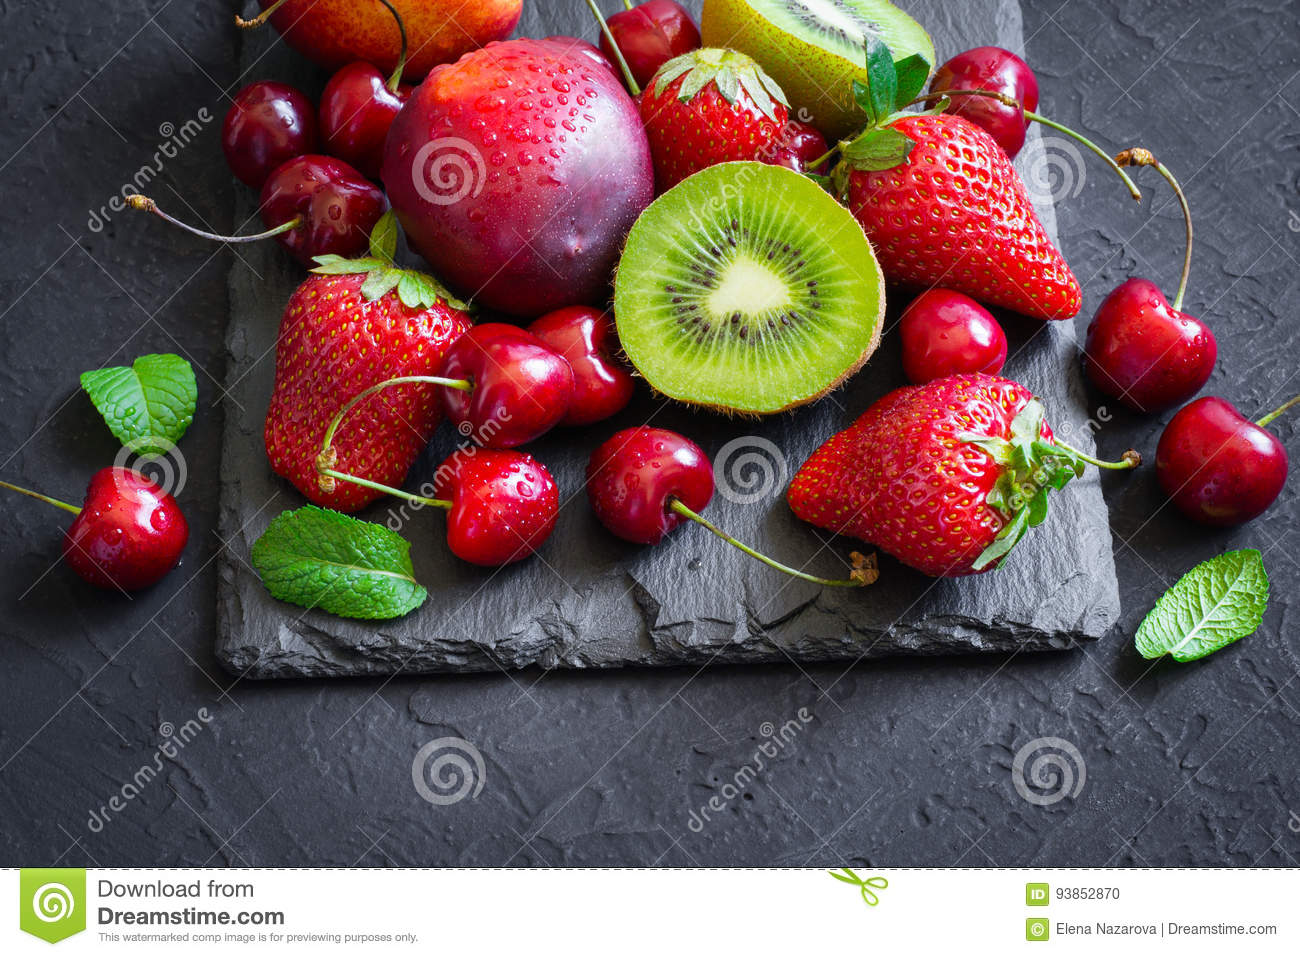 Assorted of Juicy summer fruits and berries. Strawberry, cherry, kiwi and peaches on black slate plate.